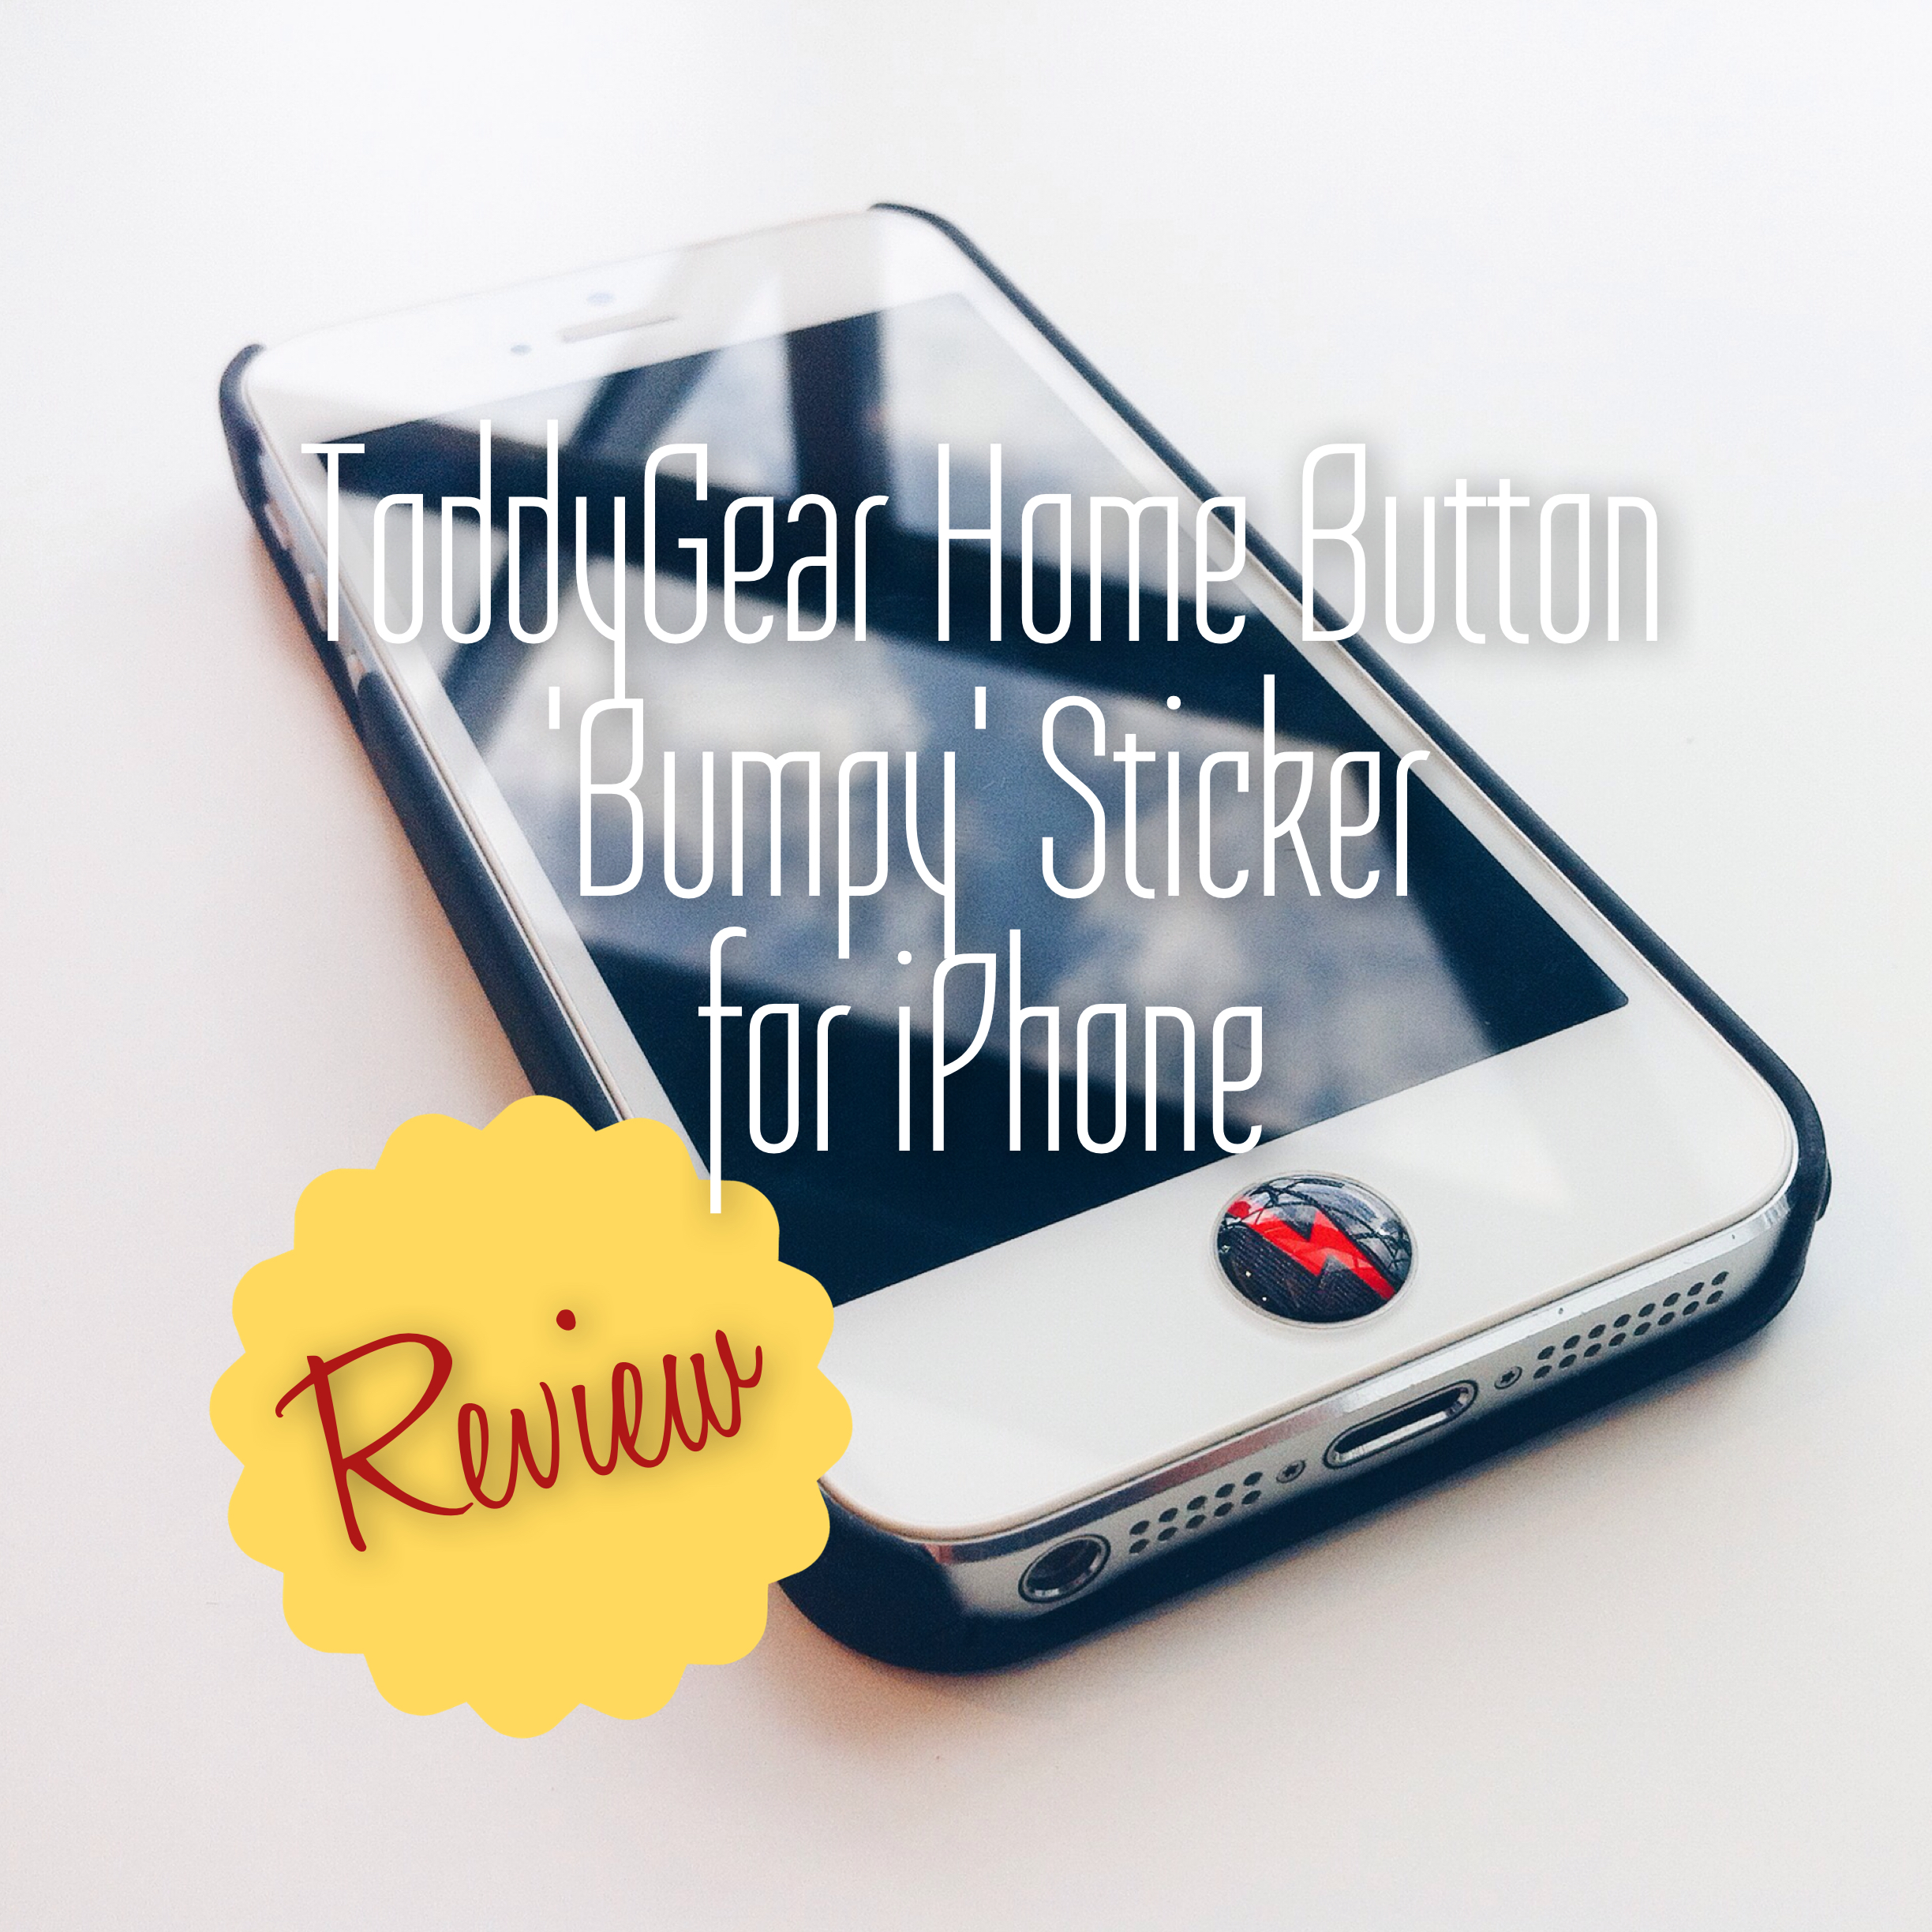 personalise your iphone with toddygear home button bumpy sticker